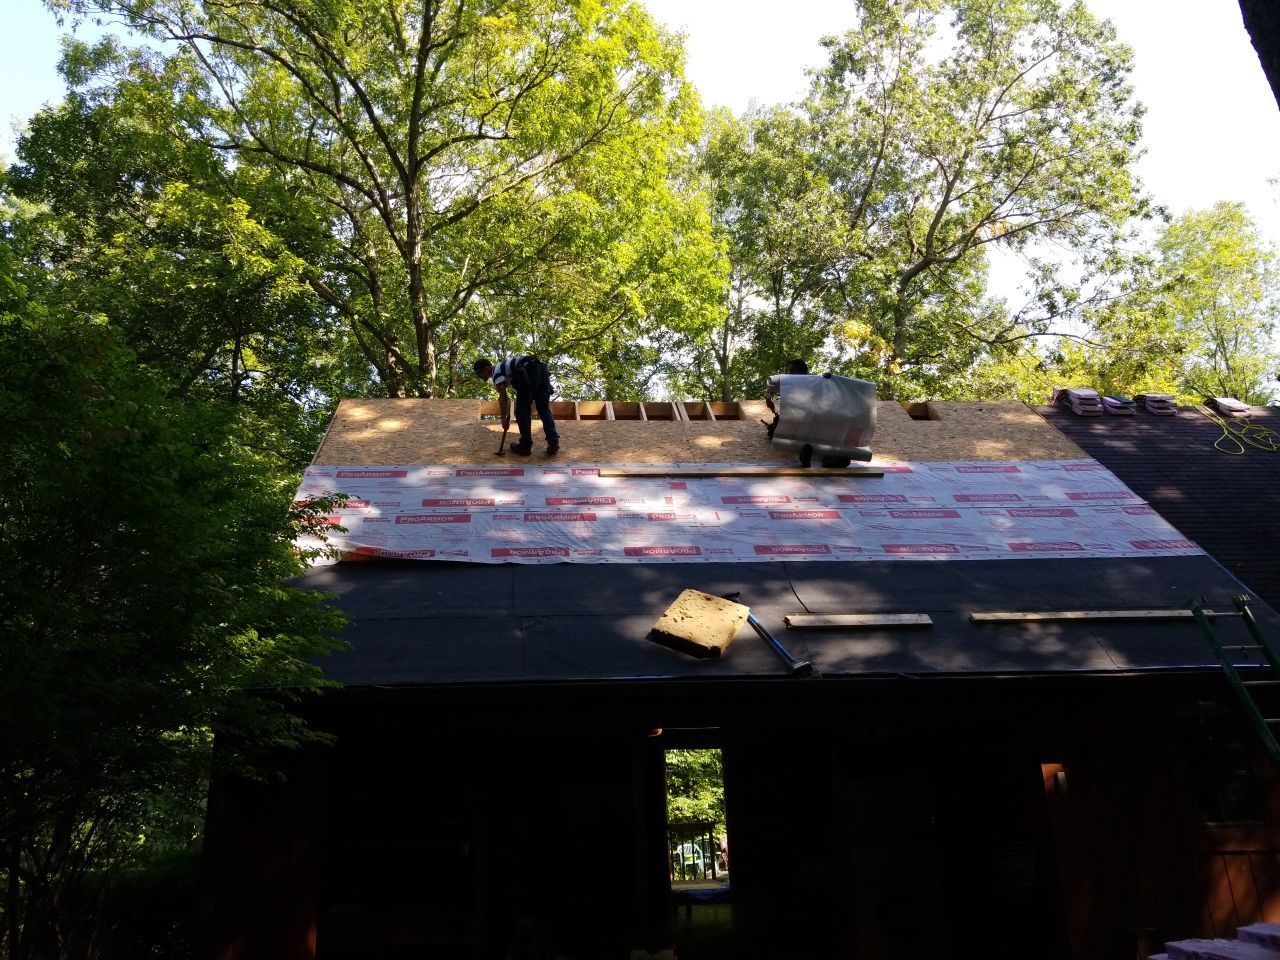 Oakland County Roof Replacement in Progress 3